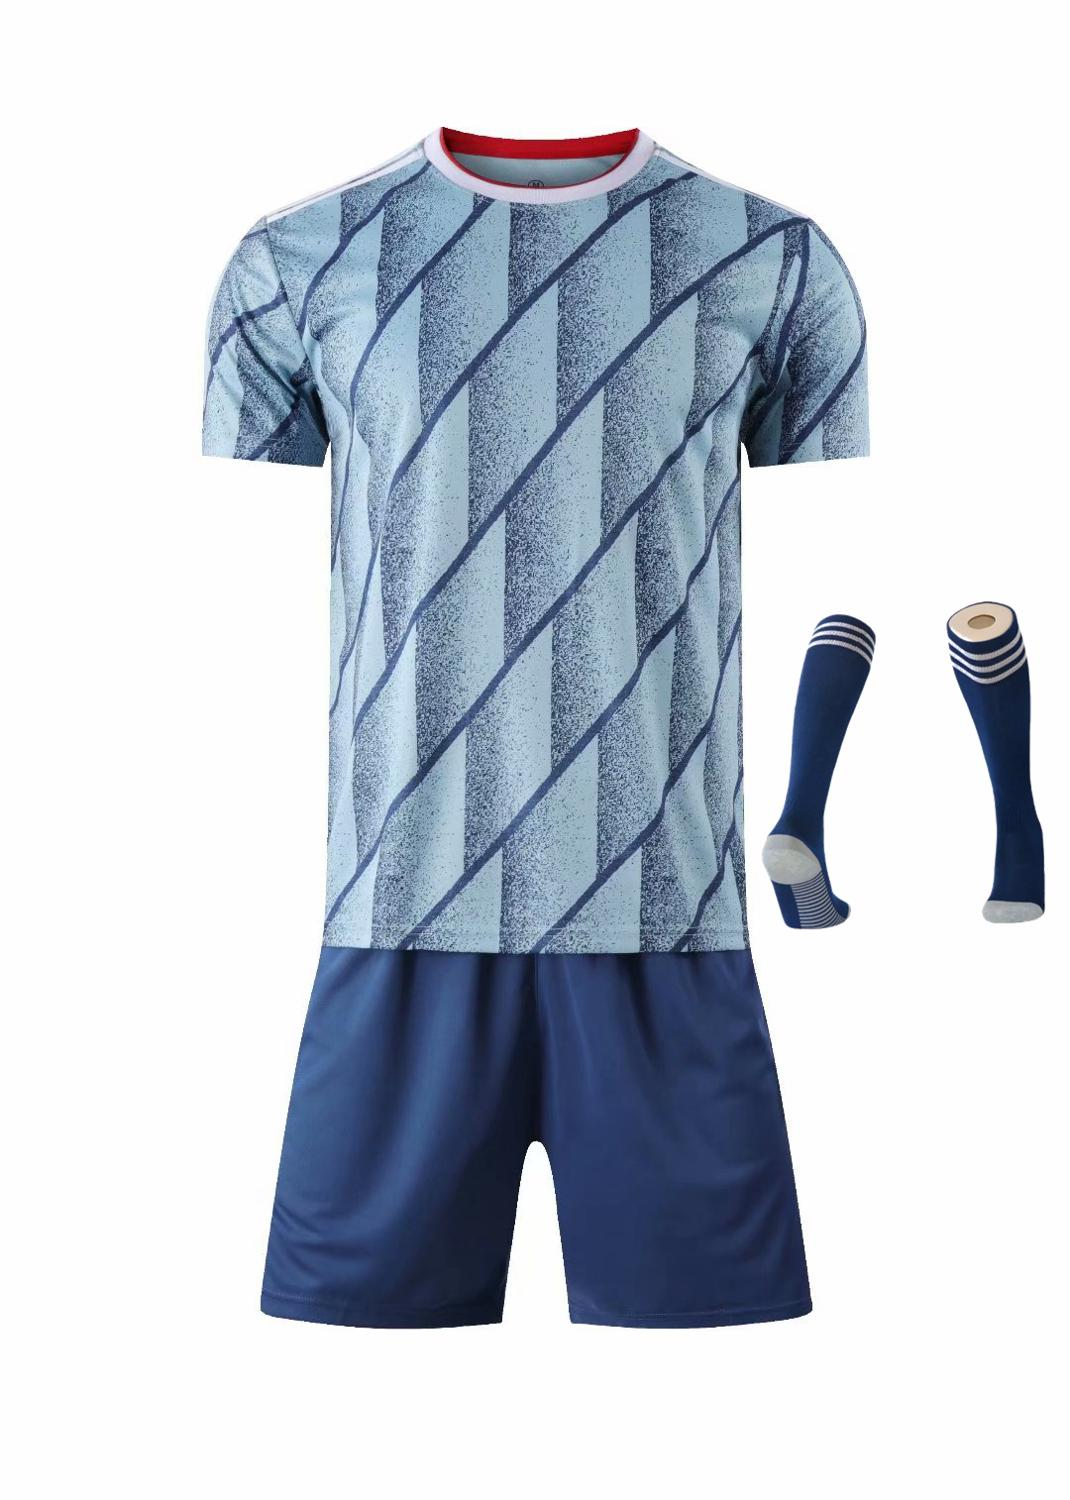 Children Sets football uniforms boys and girls sports kids youth training suits blank custom print soccer set with socks 40